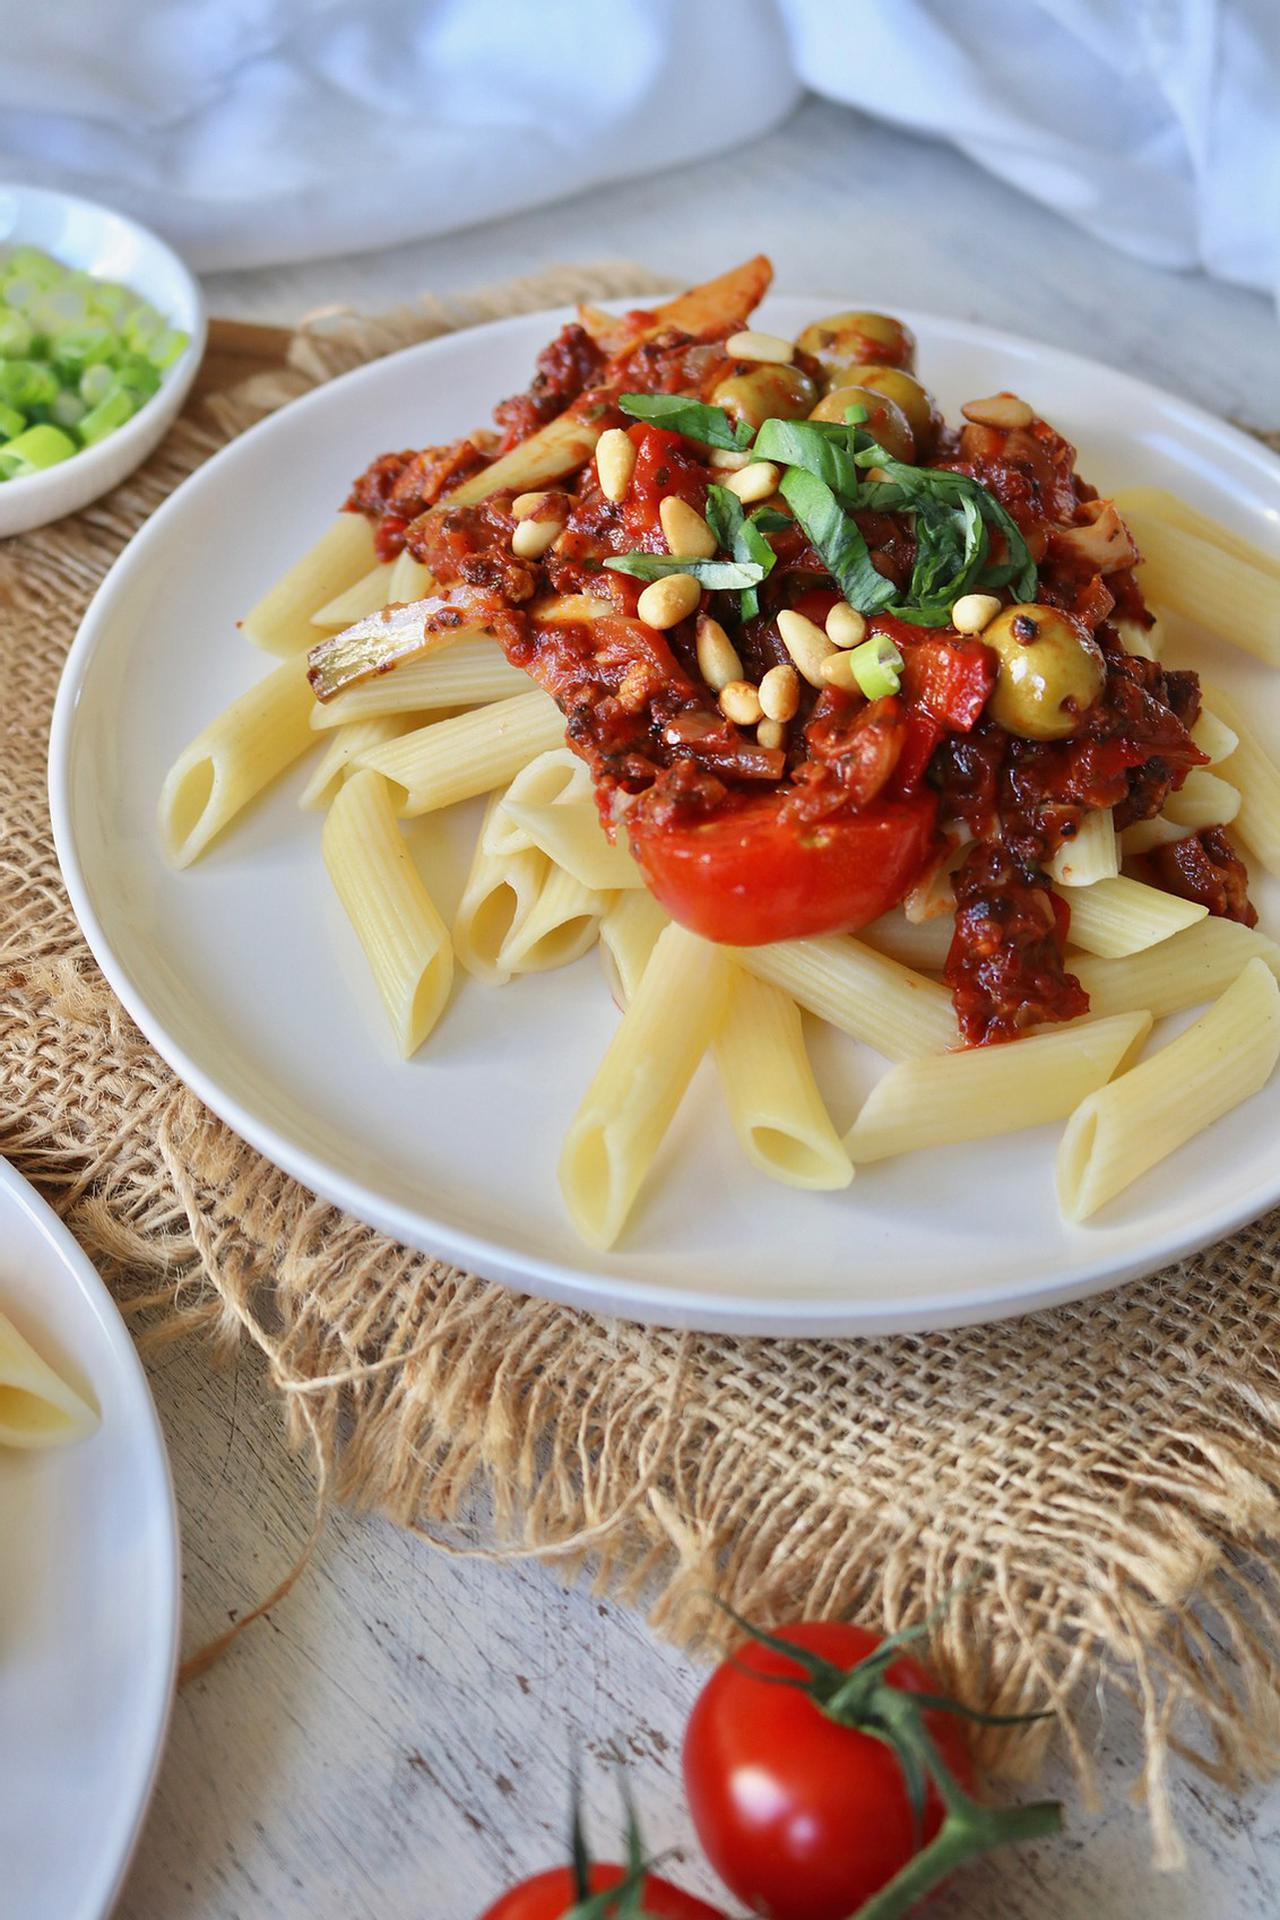 Main image of Pasta with Vegan Bolognese Sauce